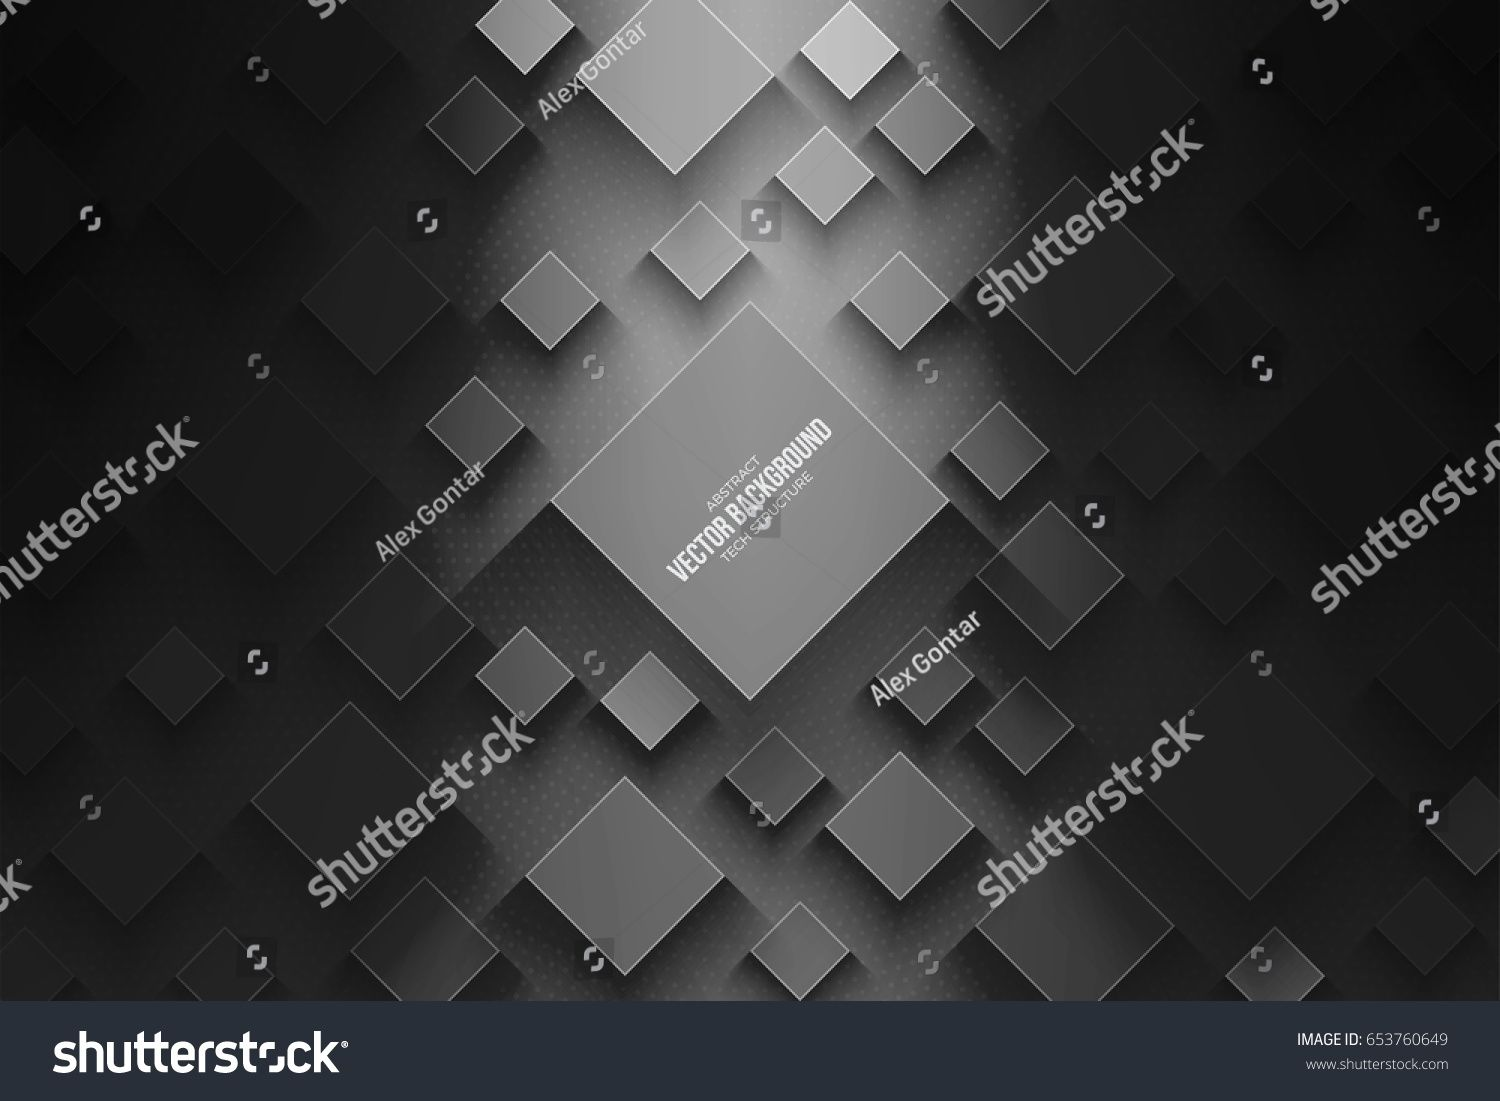 Pin On Abstract Geometrical Backgrounds Stock Vector Illustration